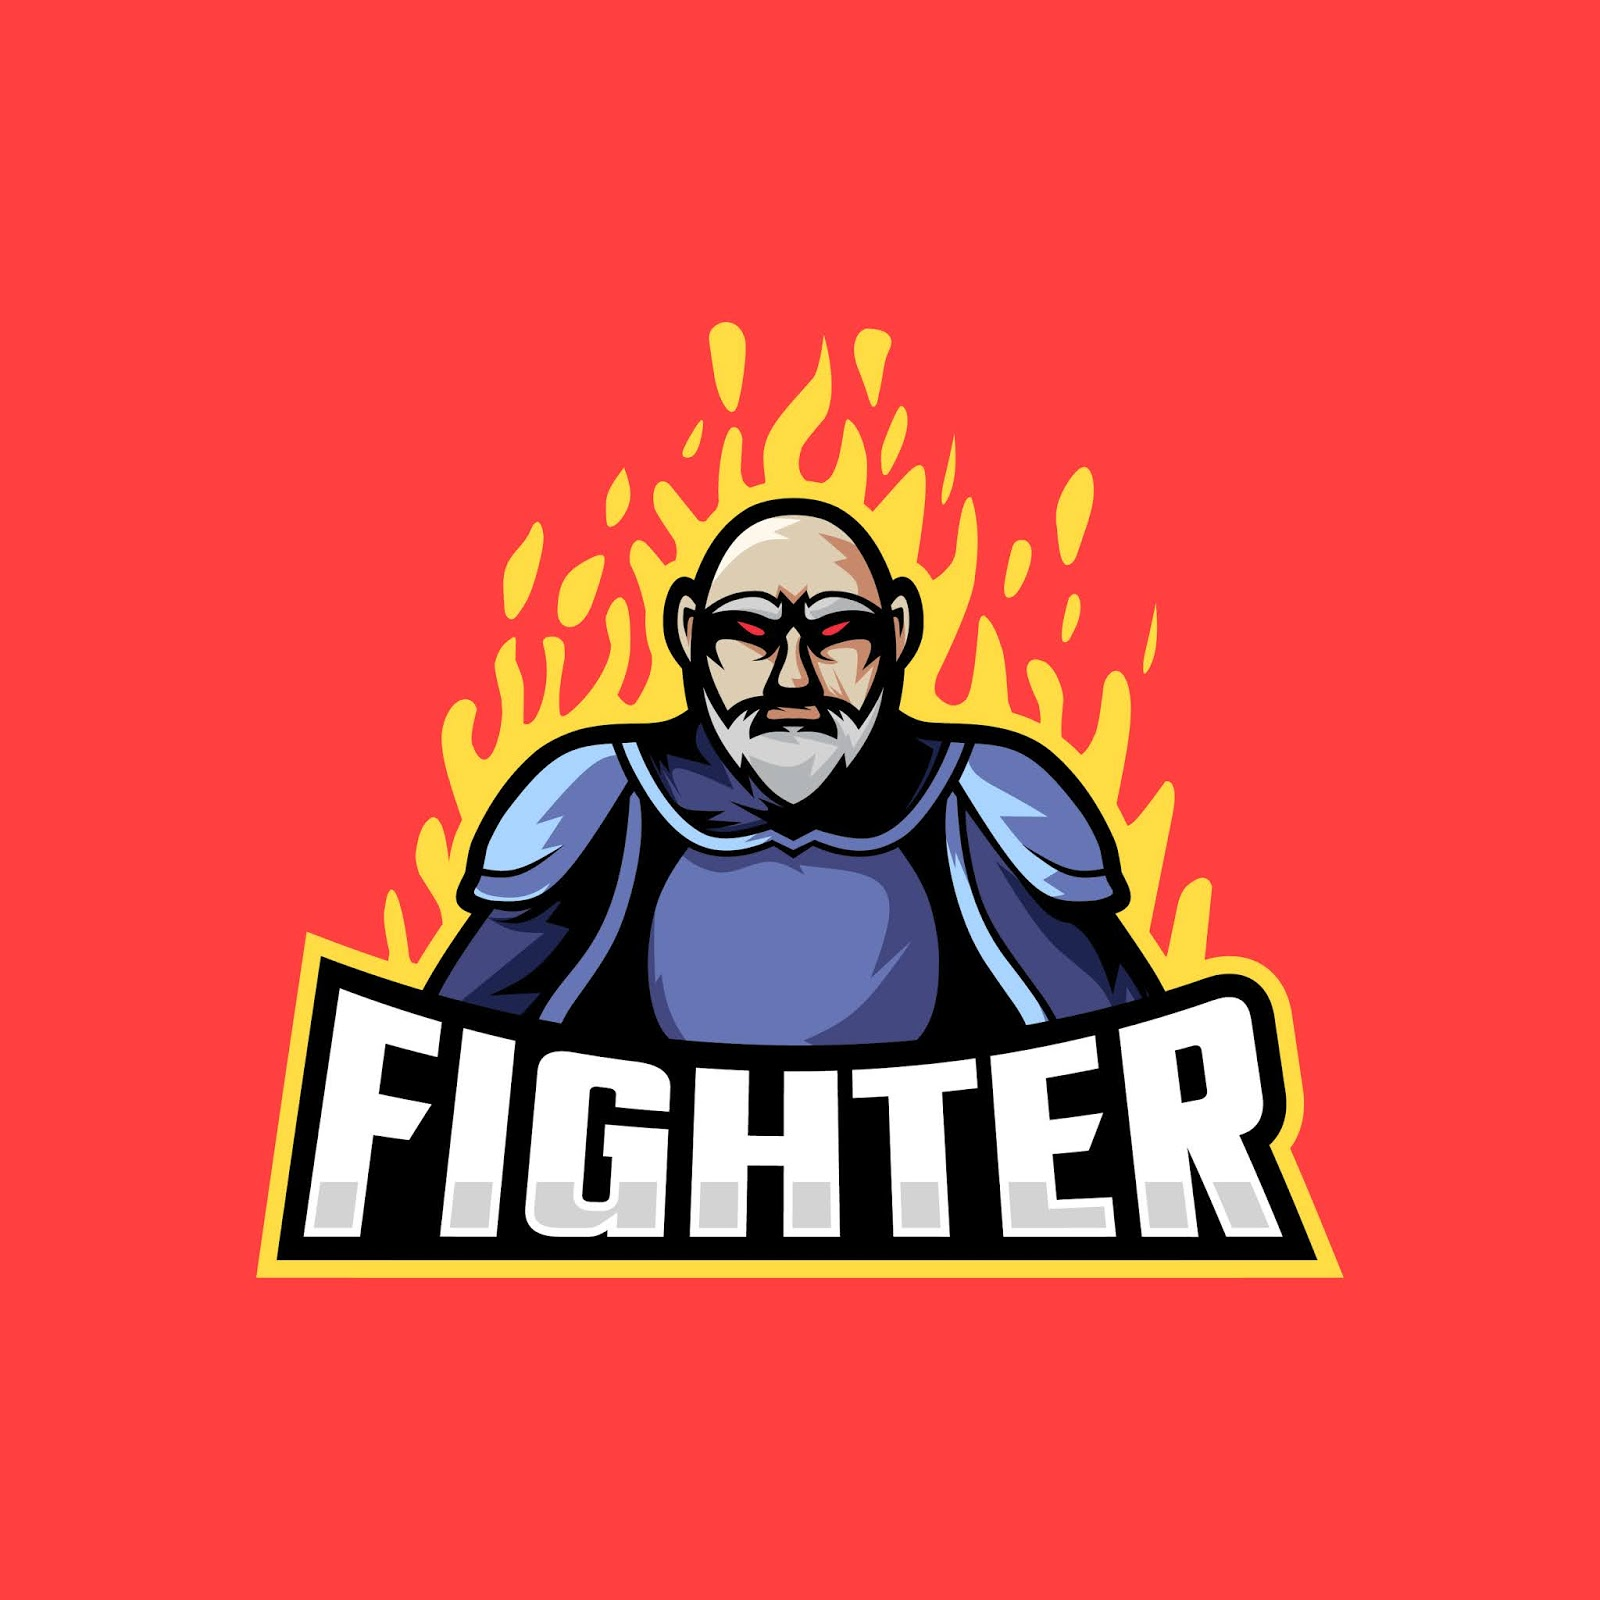 Strong Fighter With Fire Illustration Free Download Vector CDR, AI, EPS and PNG Formats